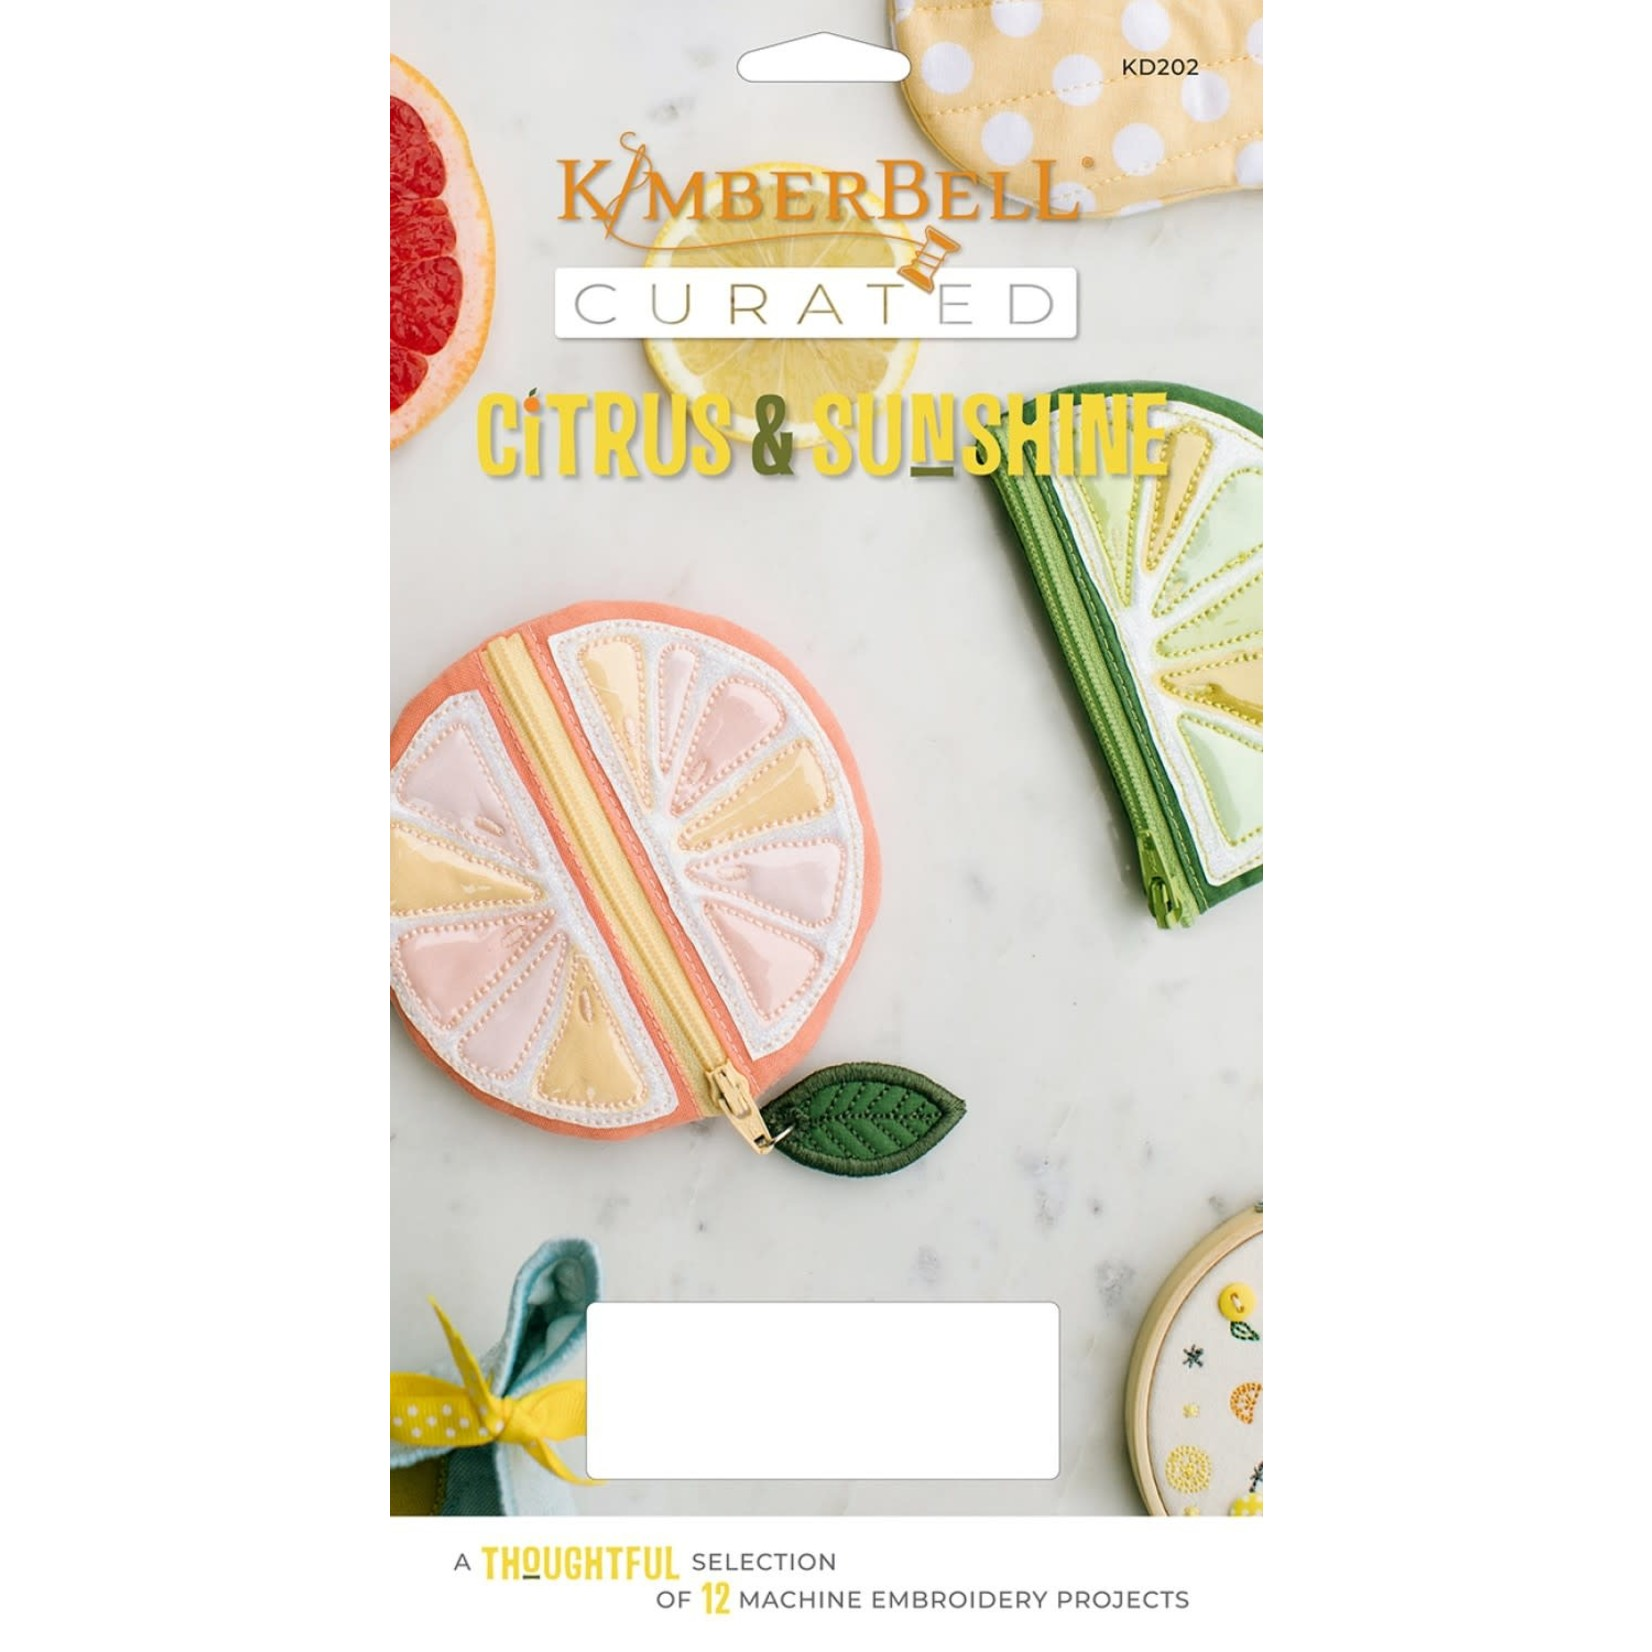 Kimberbell Designs Curated: Citrus & Sunshine